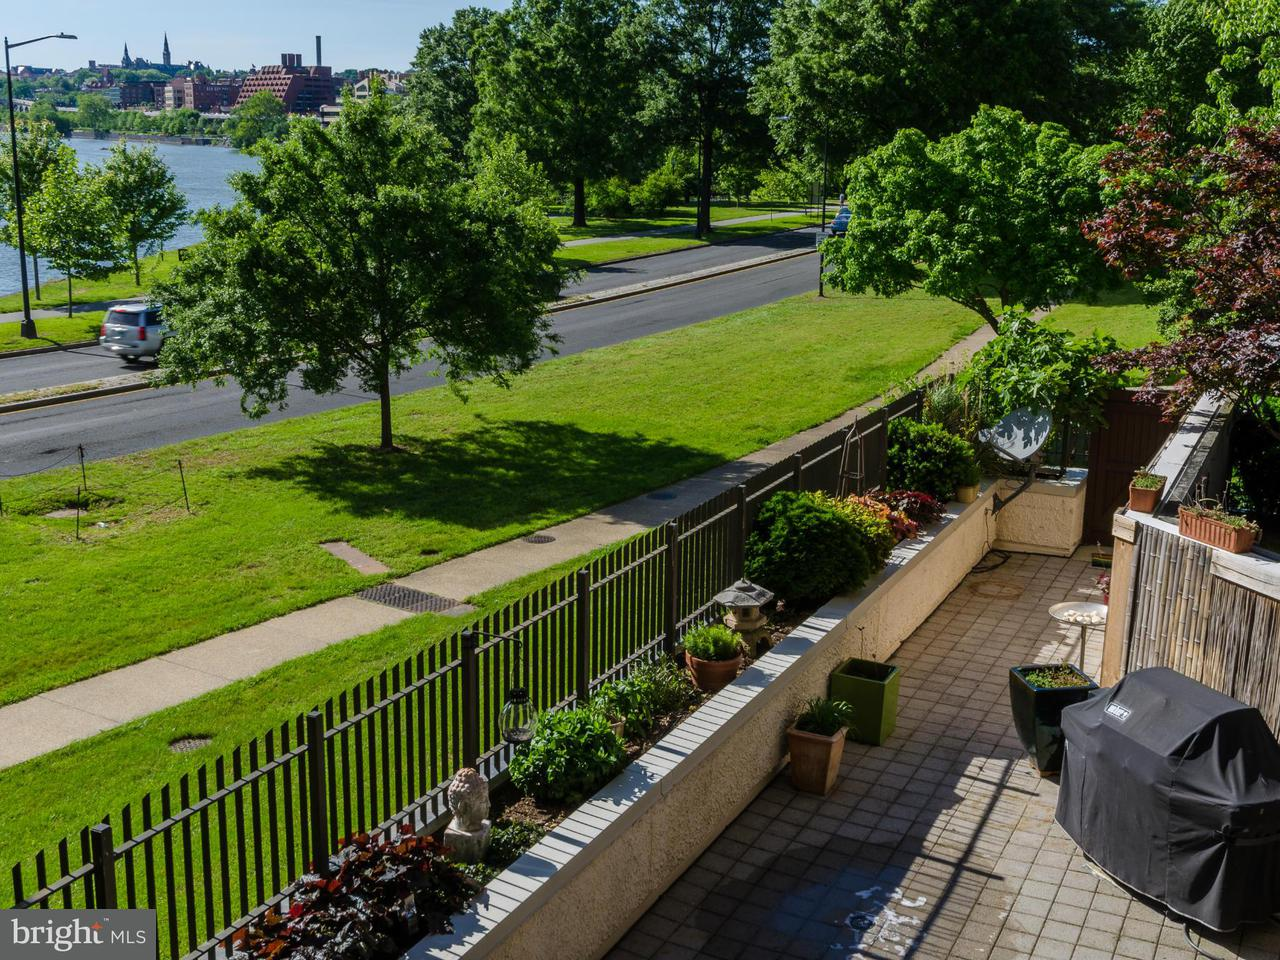 Condominium for Sale at 700 New Hampshire Ave NW #107 Washington, District Of Columbia 20037 United States